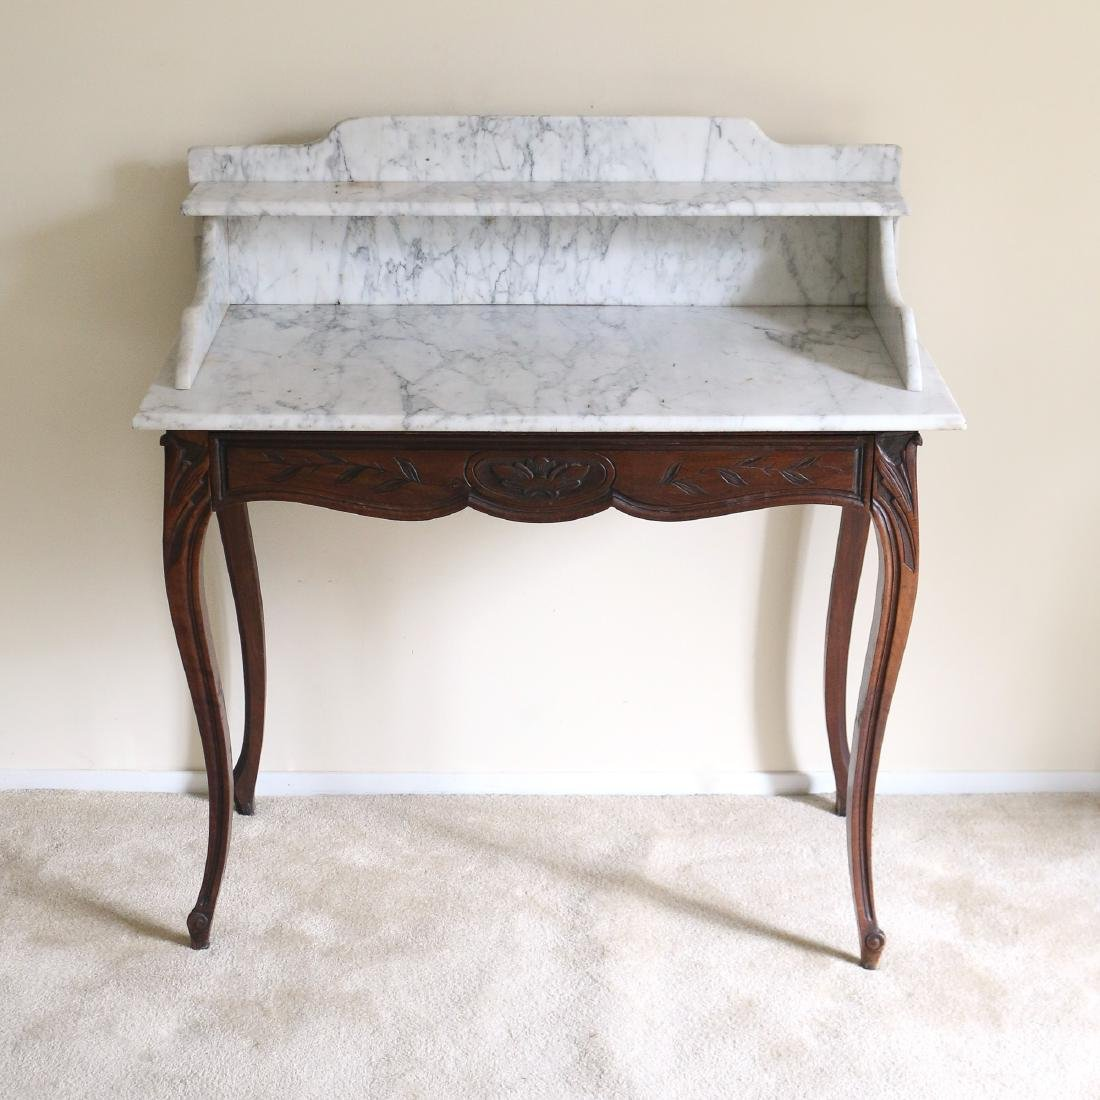 ANTIQUE MARBLE-TOP WASH STAND